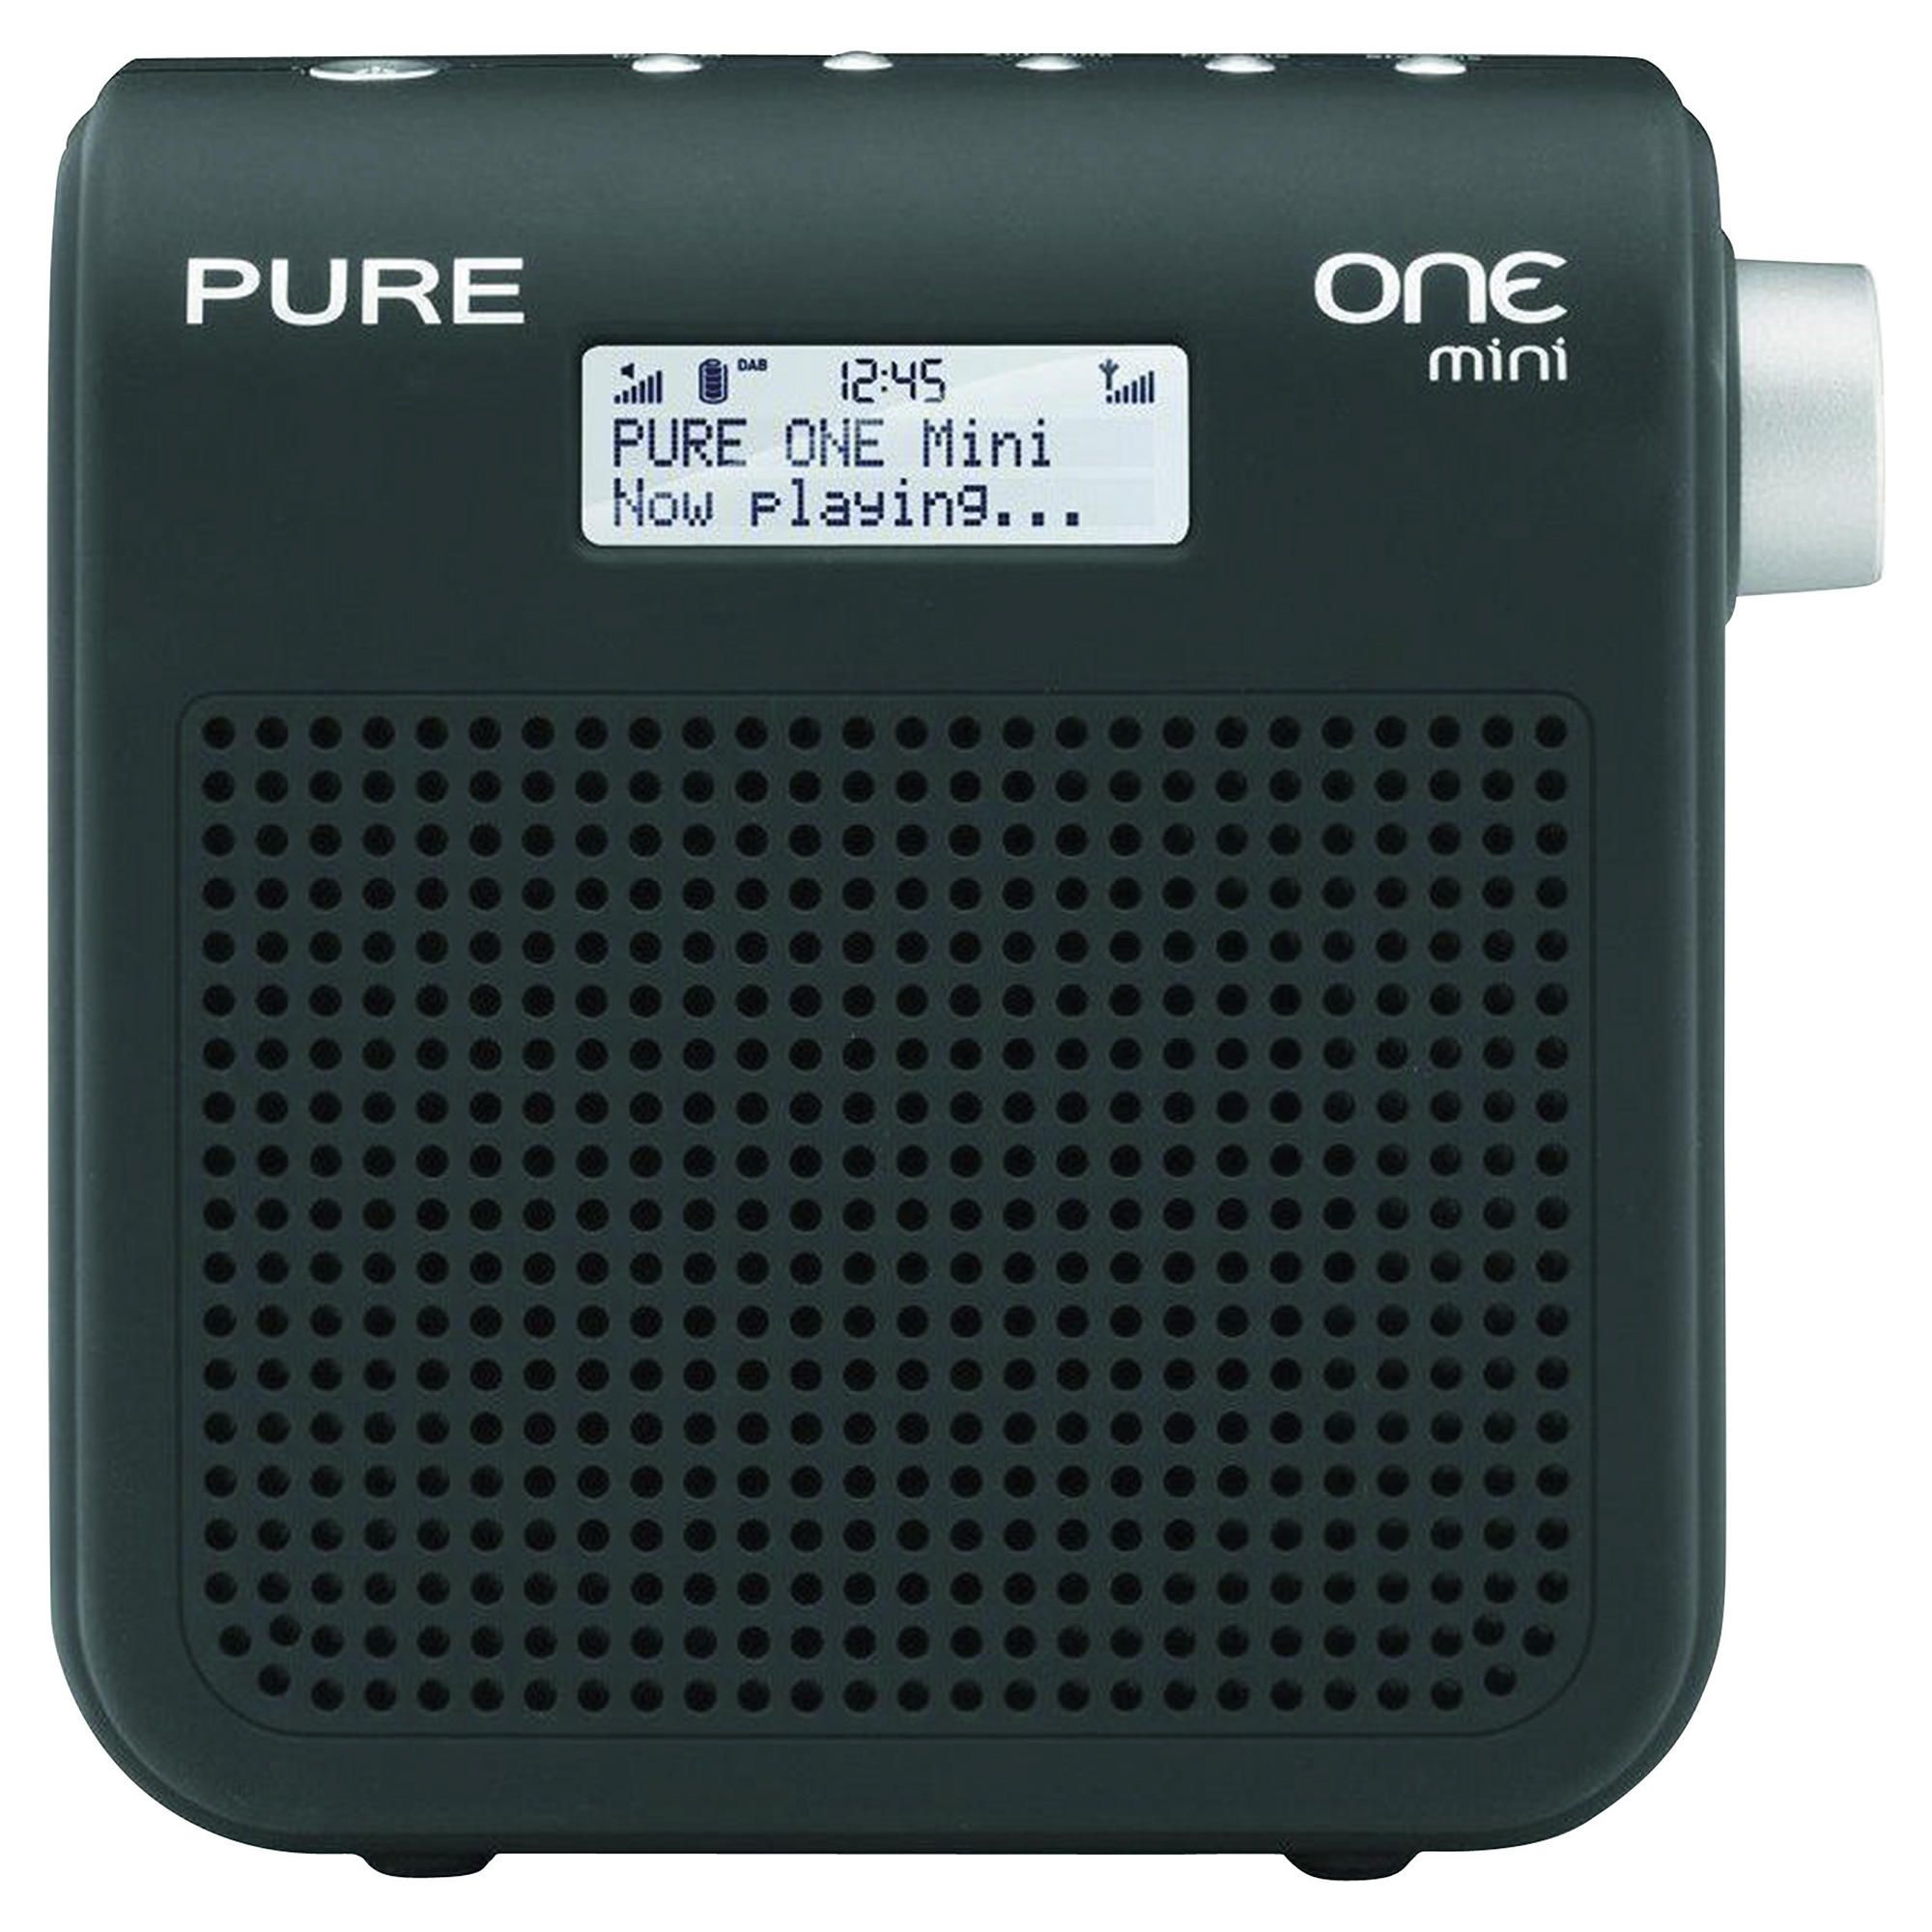 Pure One Mini SII DAB/FM Radio Black